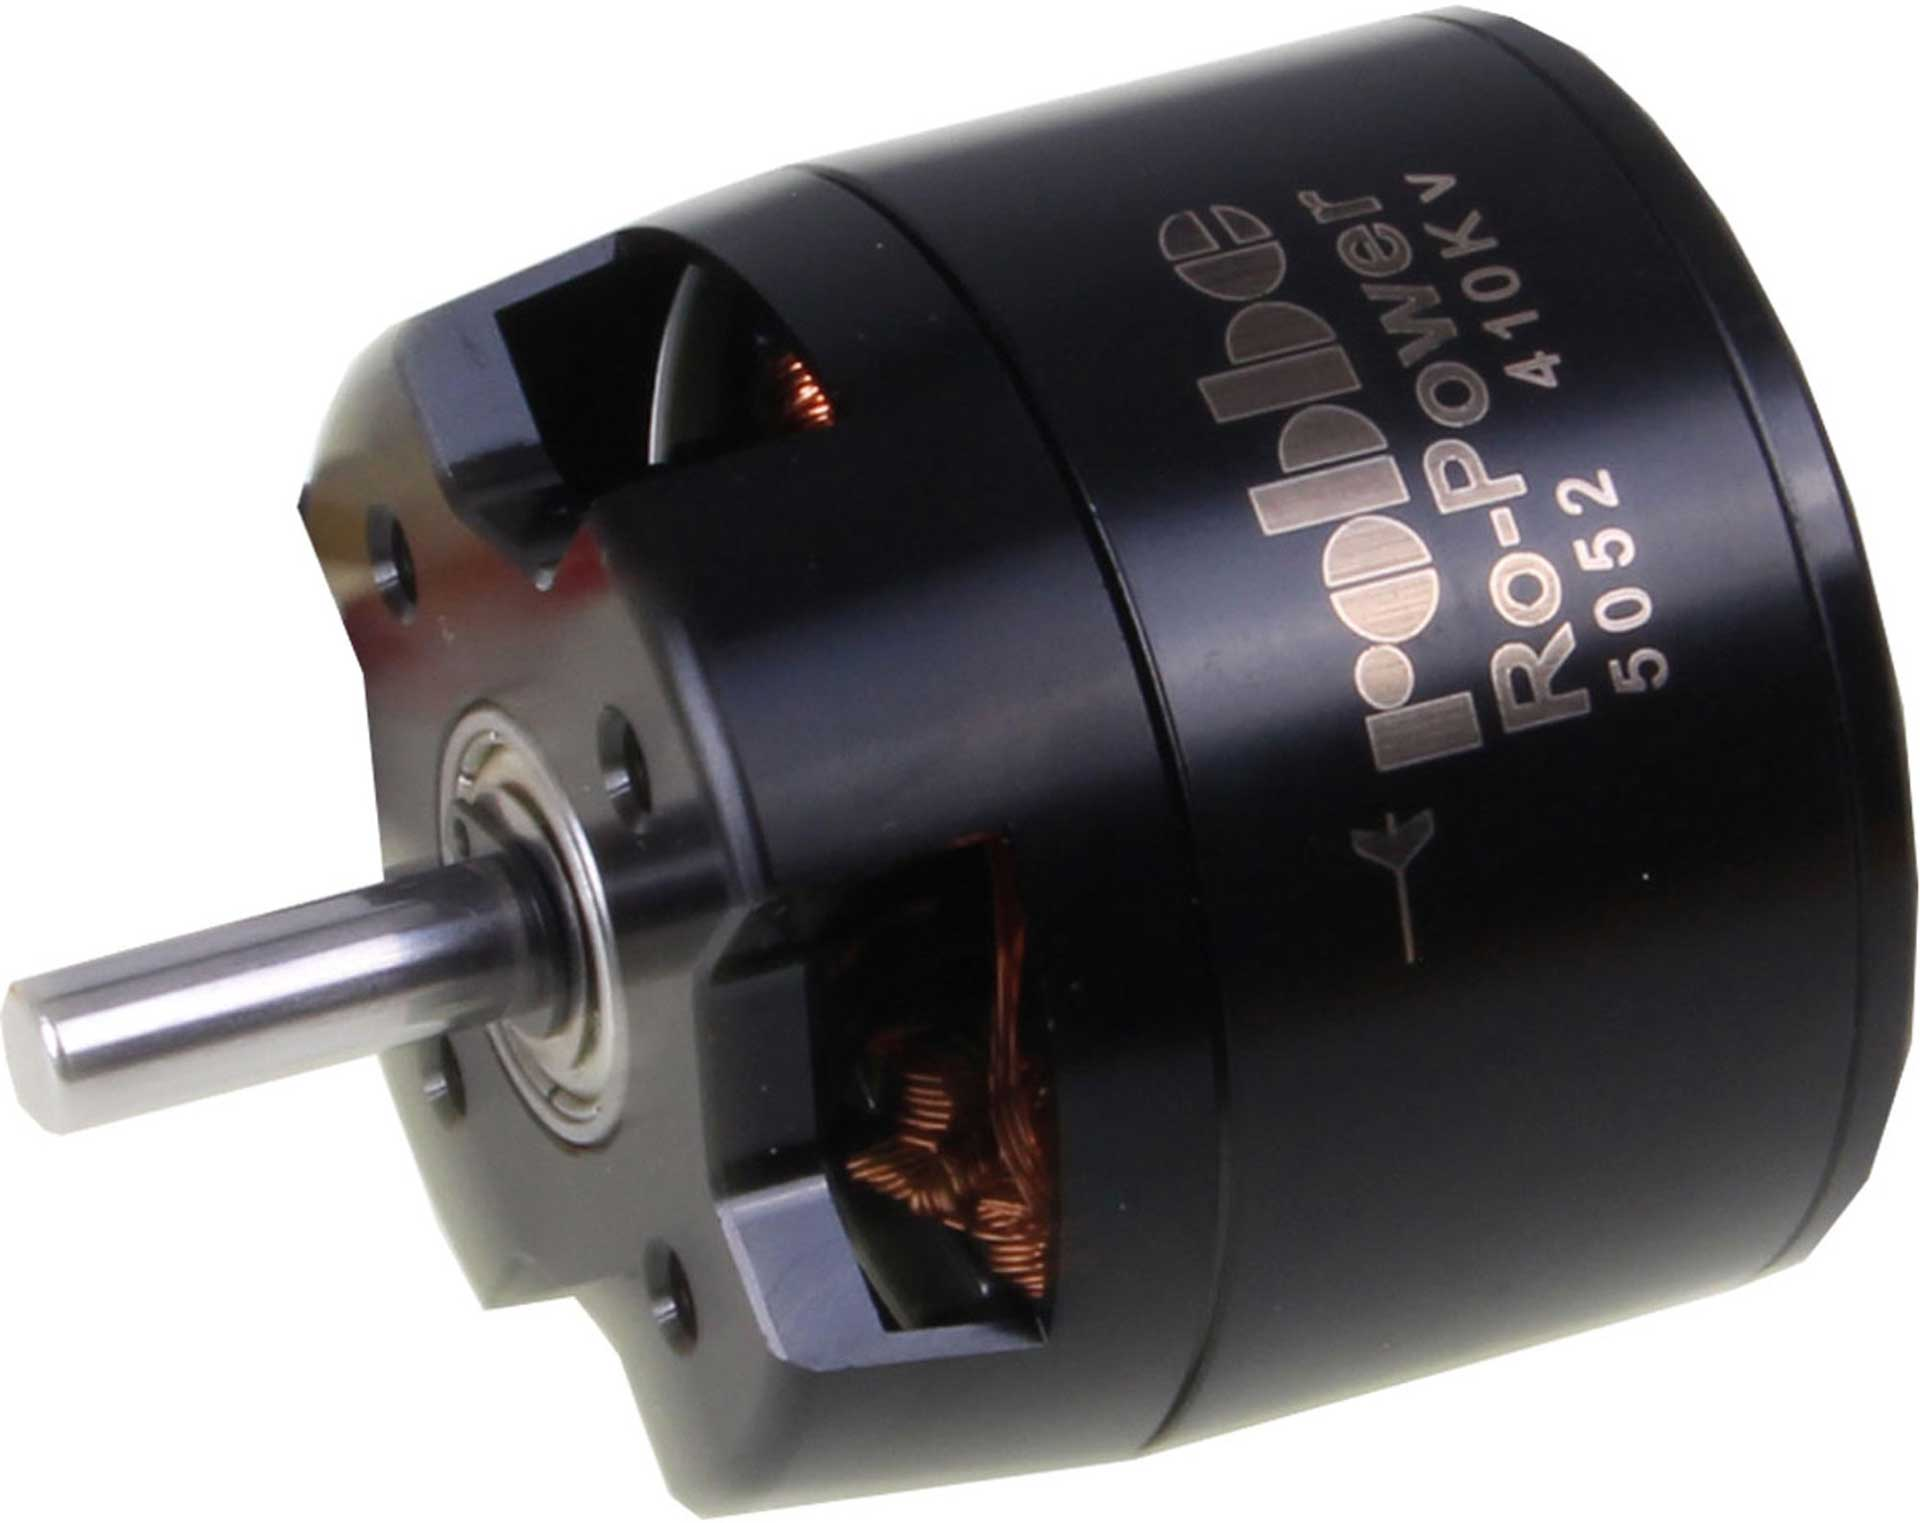 ROBBE RO-POWER TORQUE 5052 410 K/V BRUSHLESS